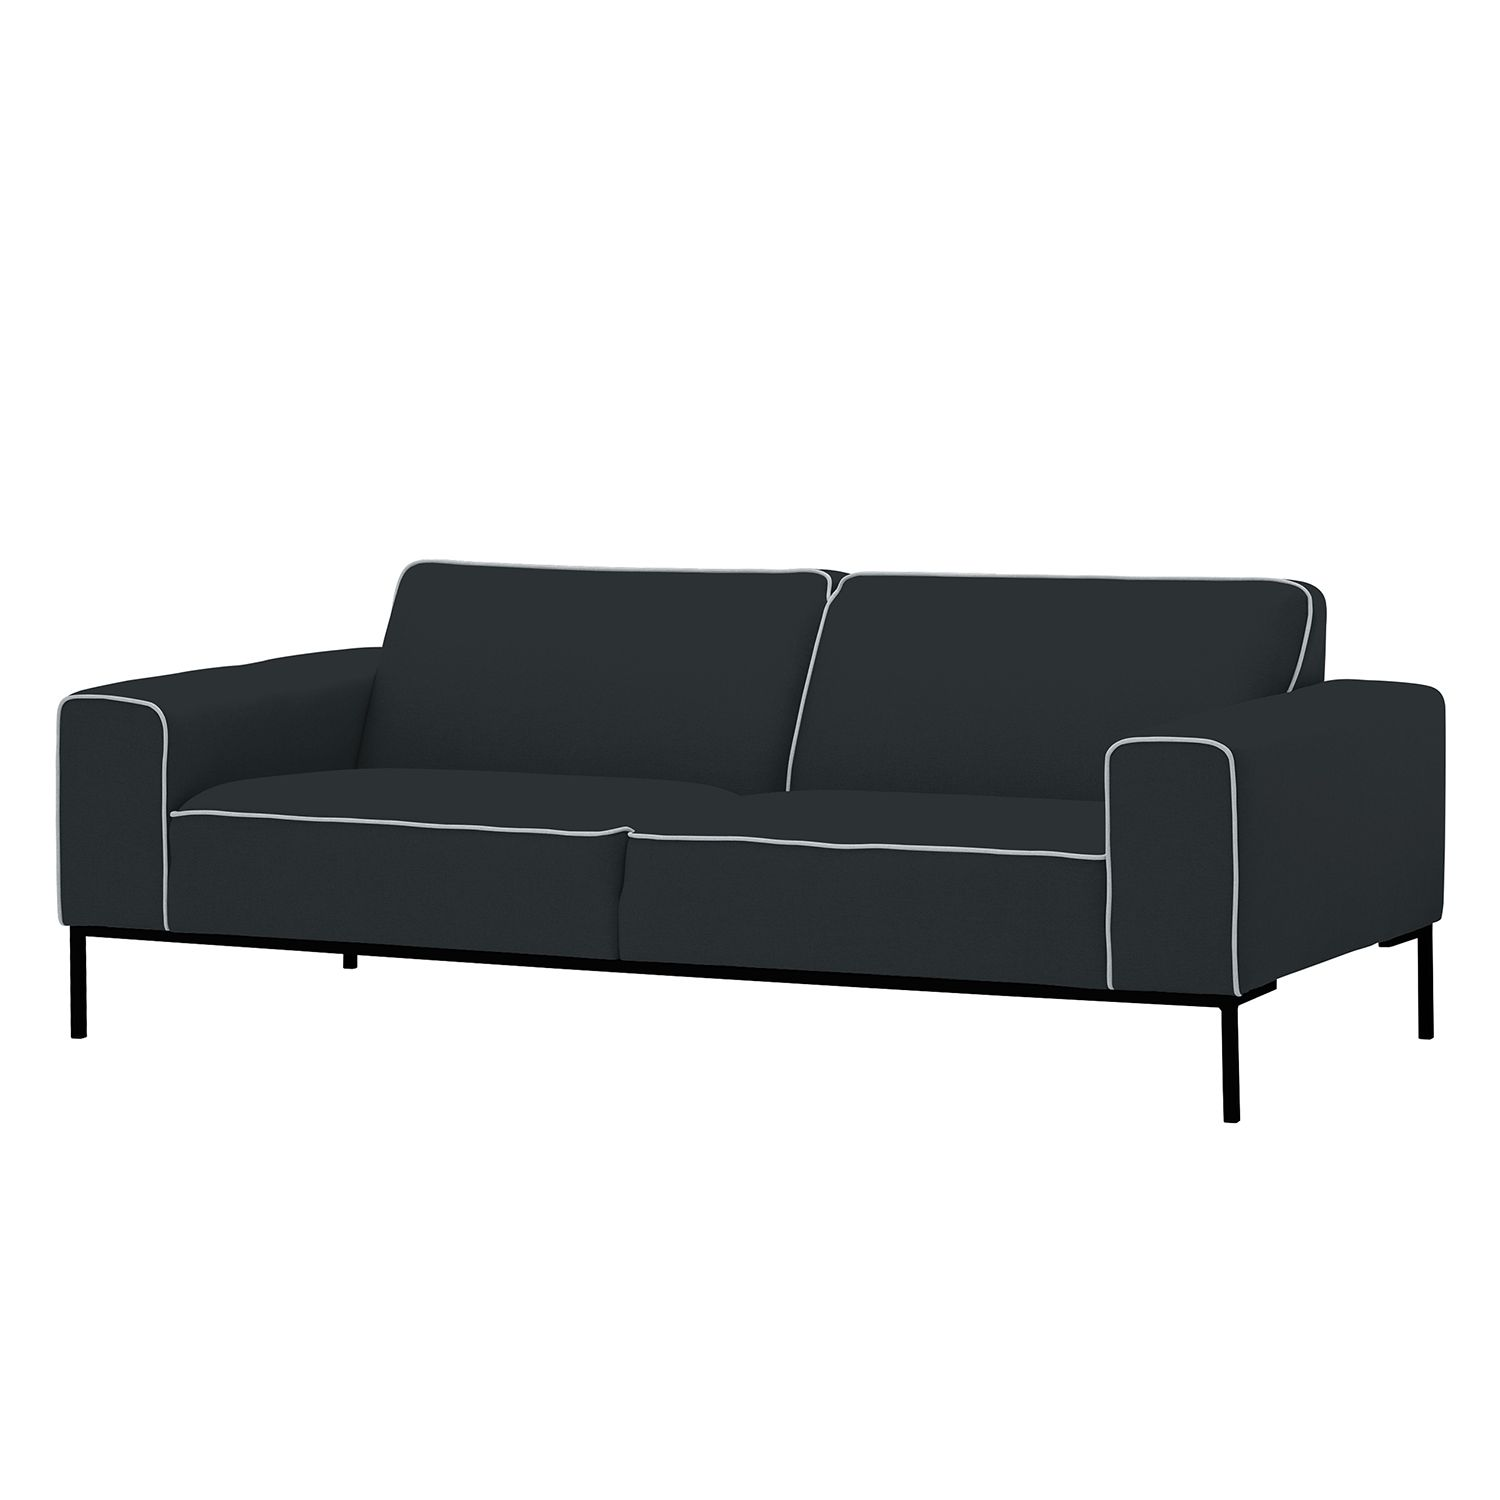 sofa ampio duo 3 sitzer webstoff schwarz stoff. Black Bedroom Furniture Sets. Home Design Ideas